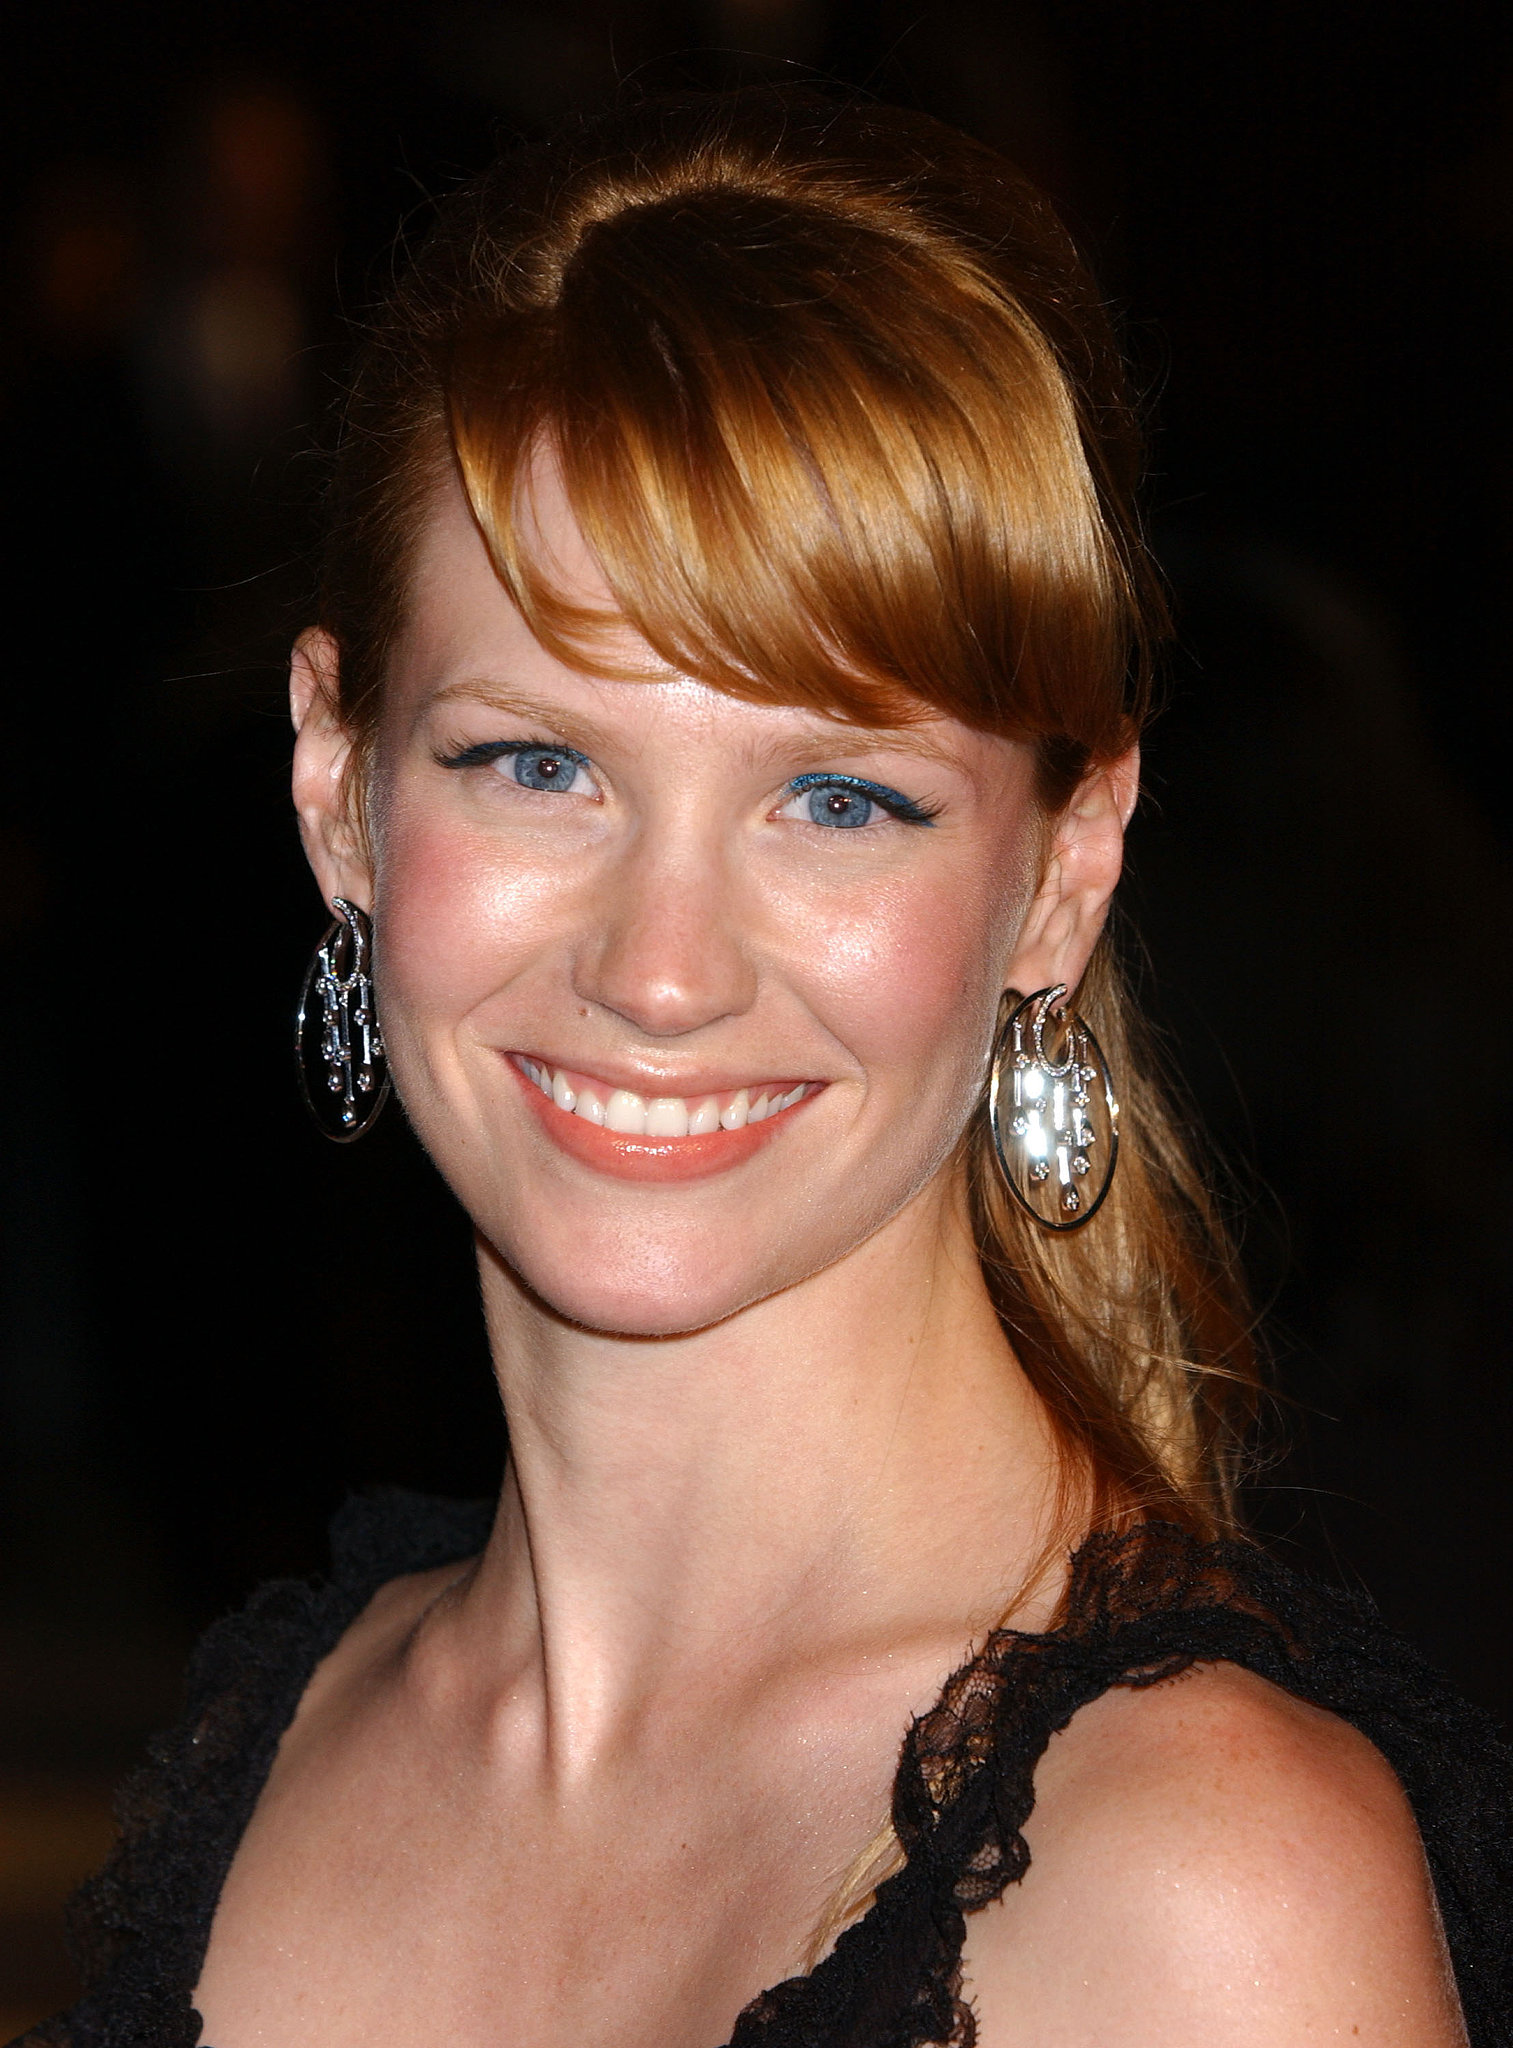 At the 2005 Vanity Fair Oscars party, January showed off strawberry-blond hair with side-swept bangs and a ponytail. She kept her makeup simple: a pop of bright blue eyeliner made her blue eyes stand out.